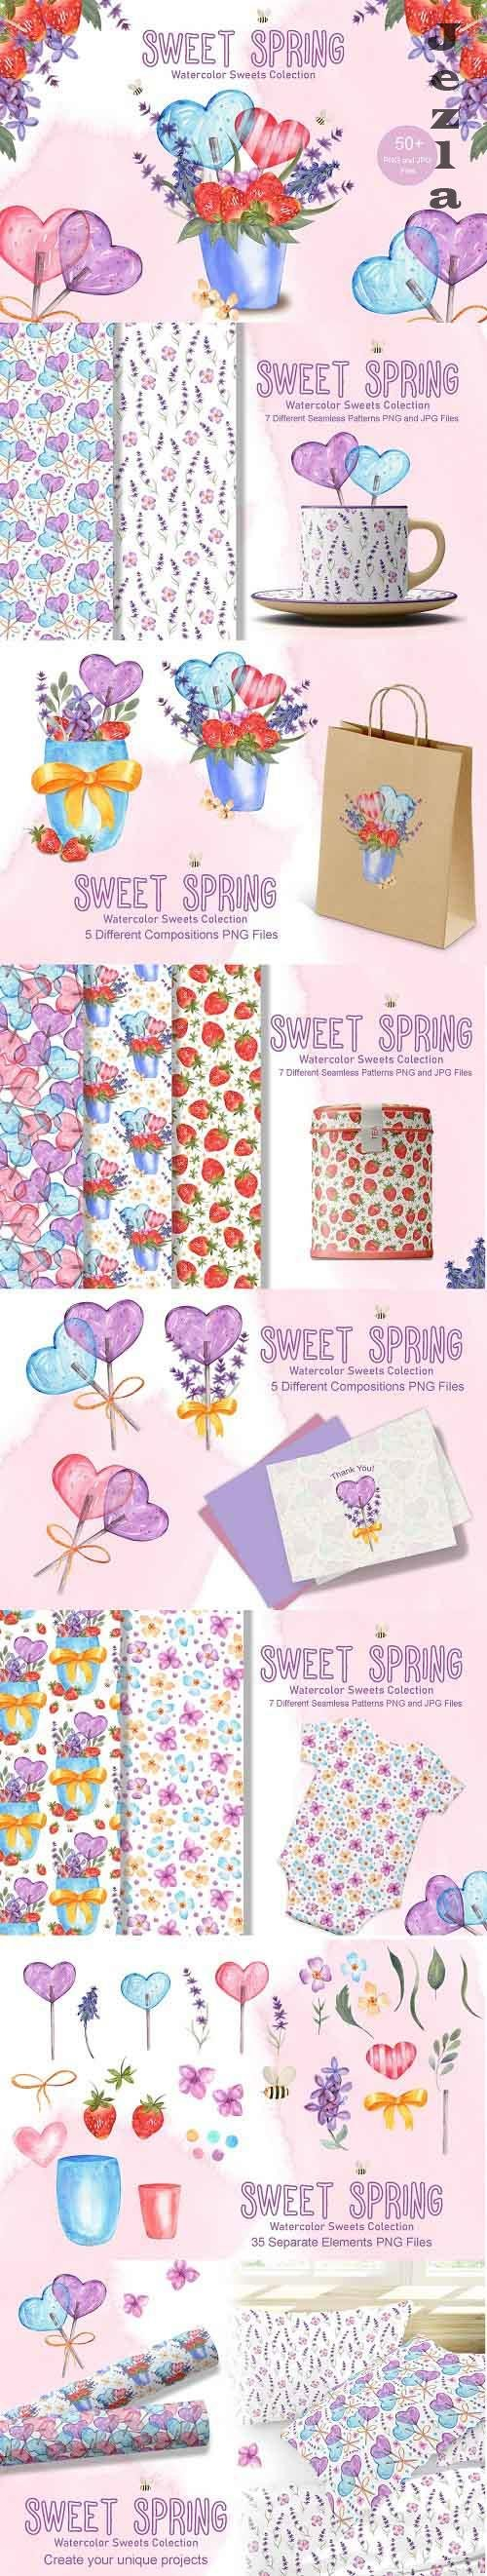 Sweet Spring Watercolor Collection - 5888017